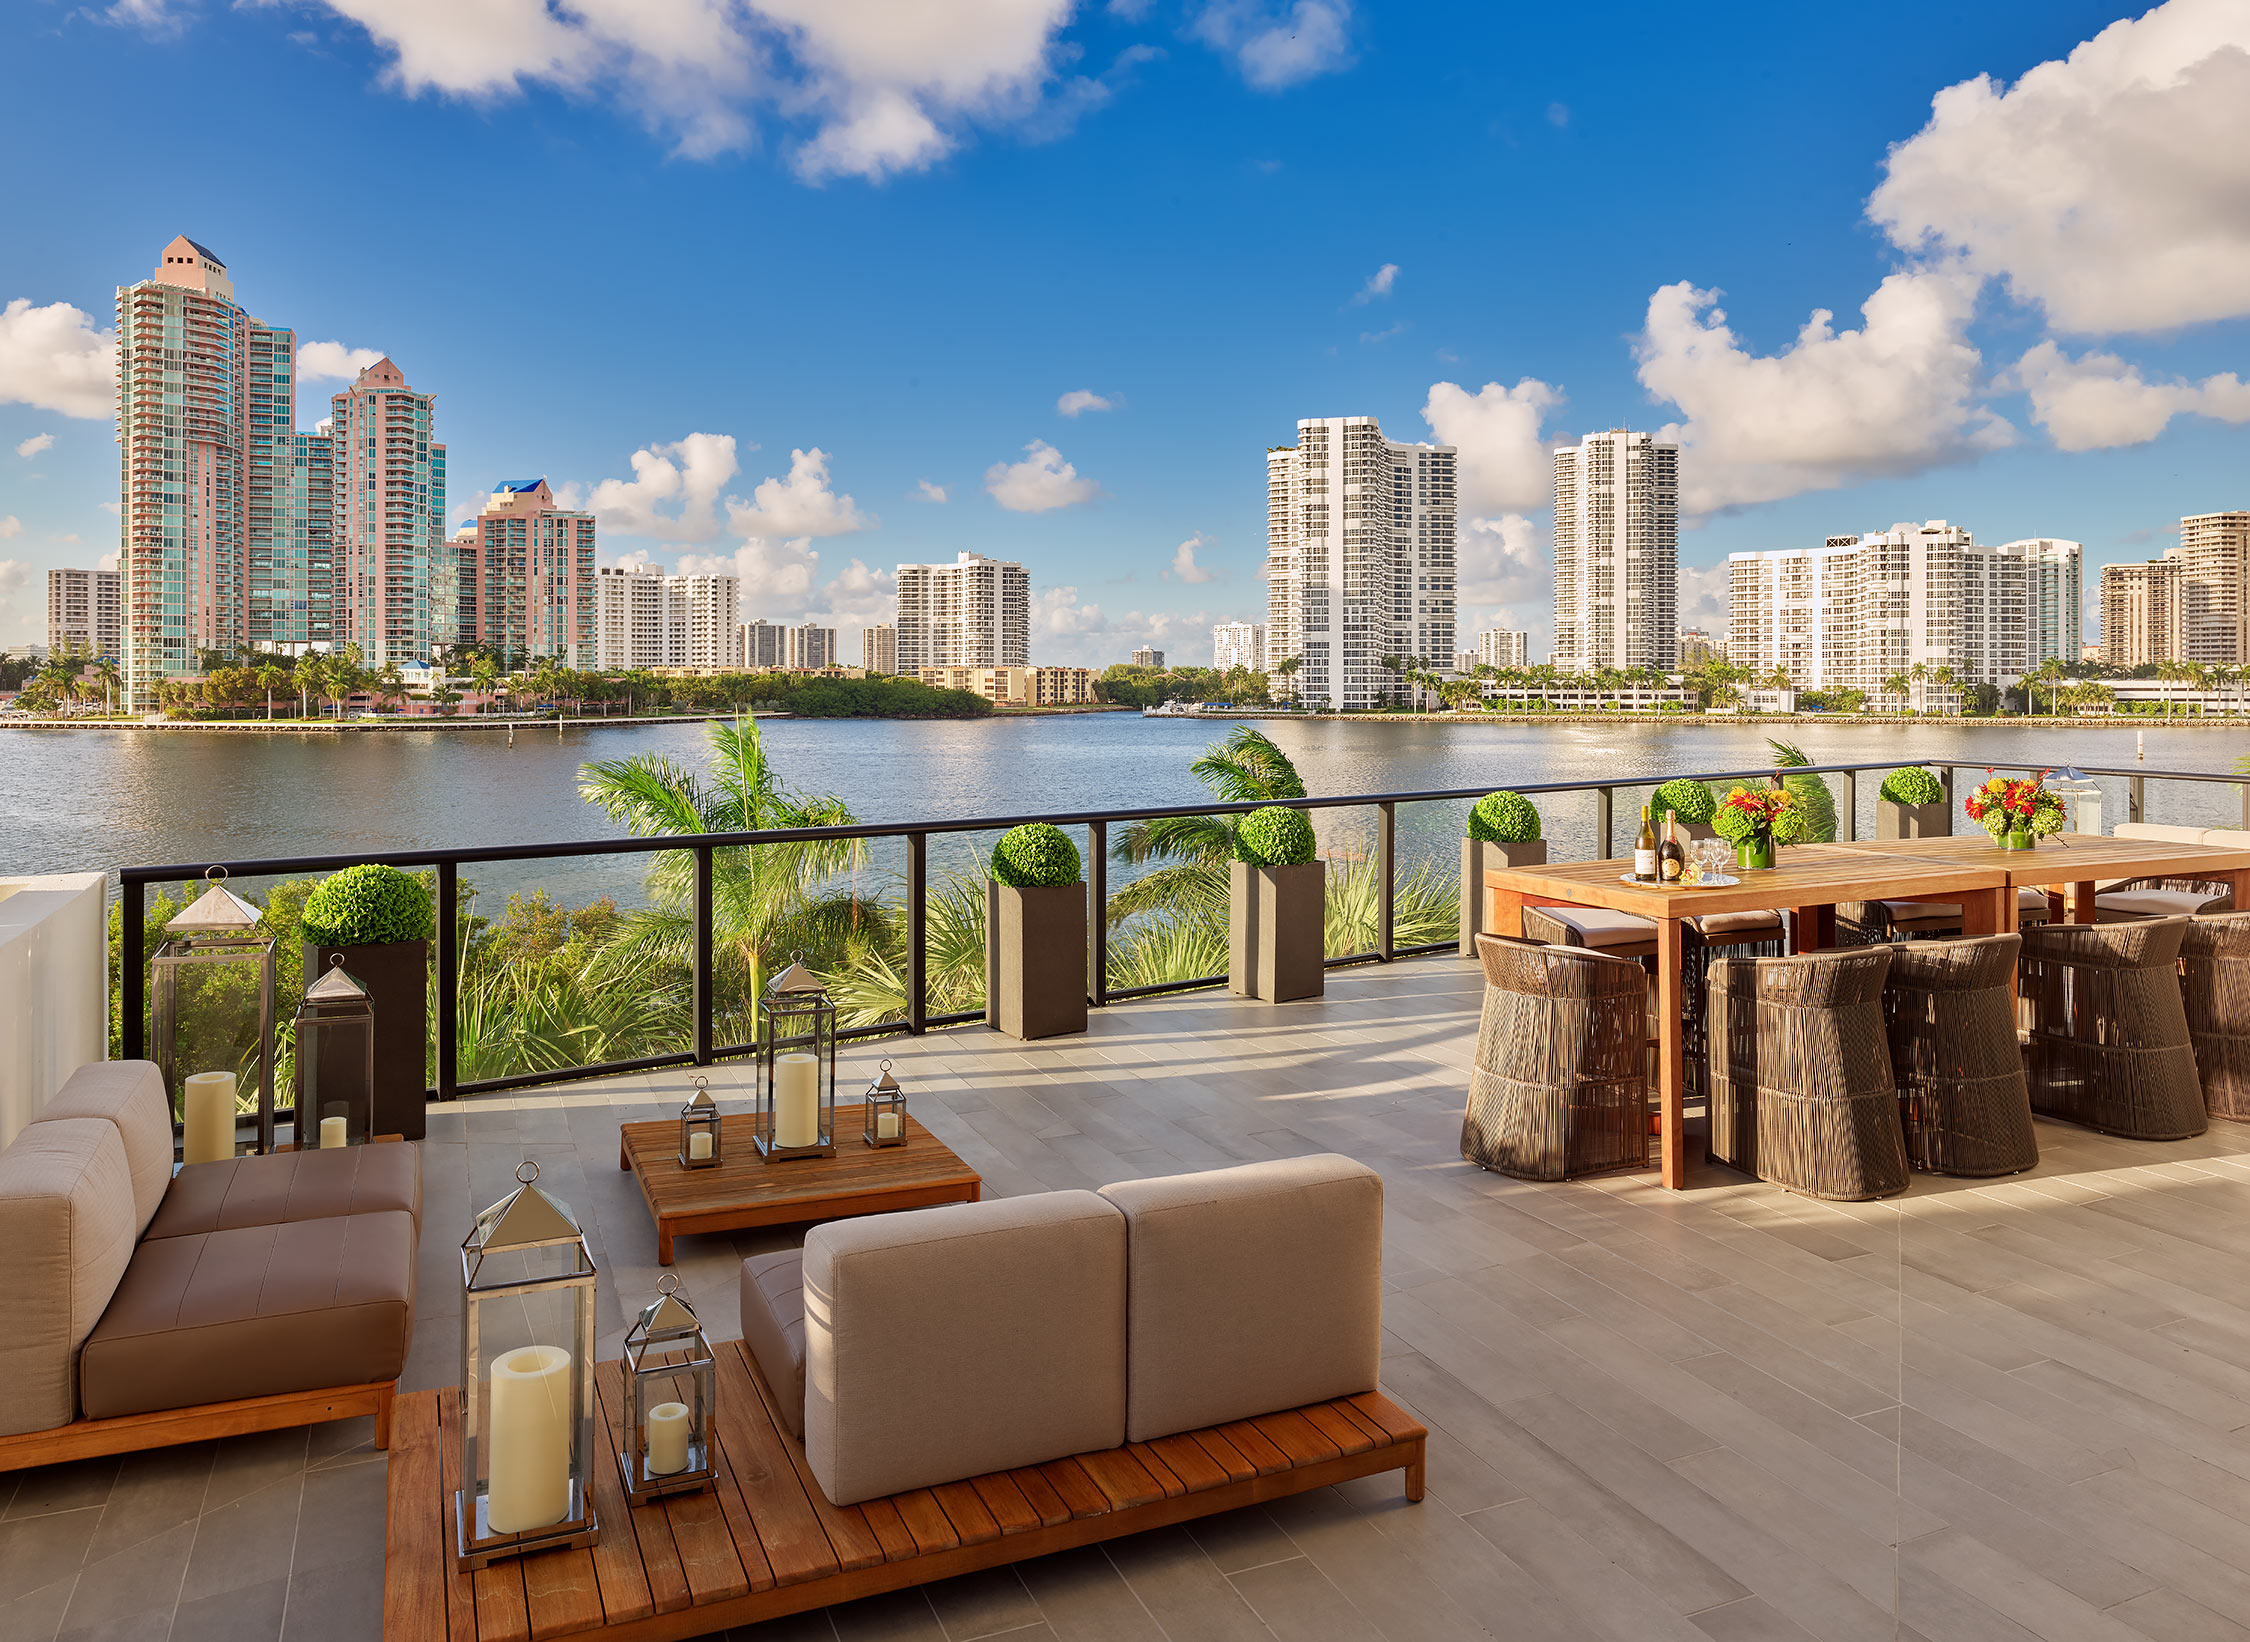 Prive-Condominium-Aventura-Florida-Deck-View